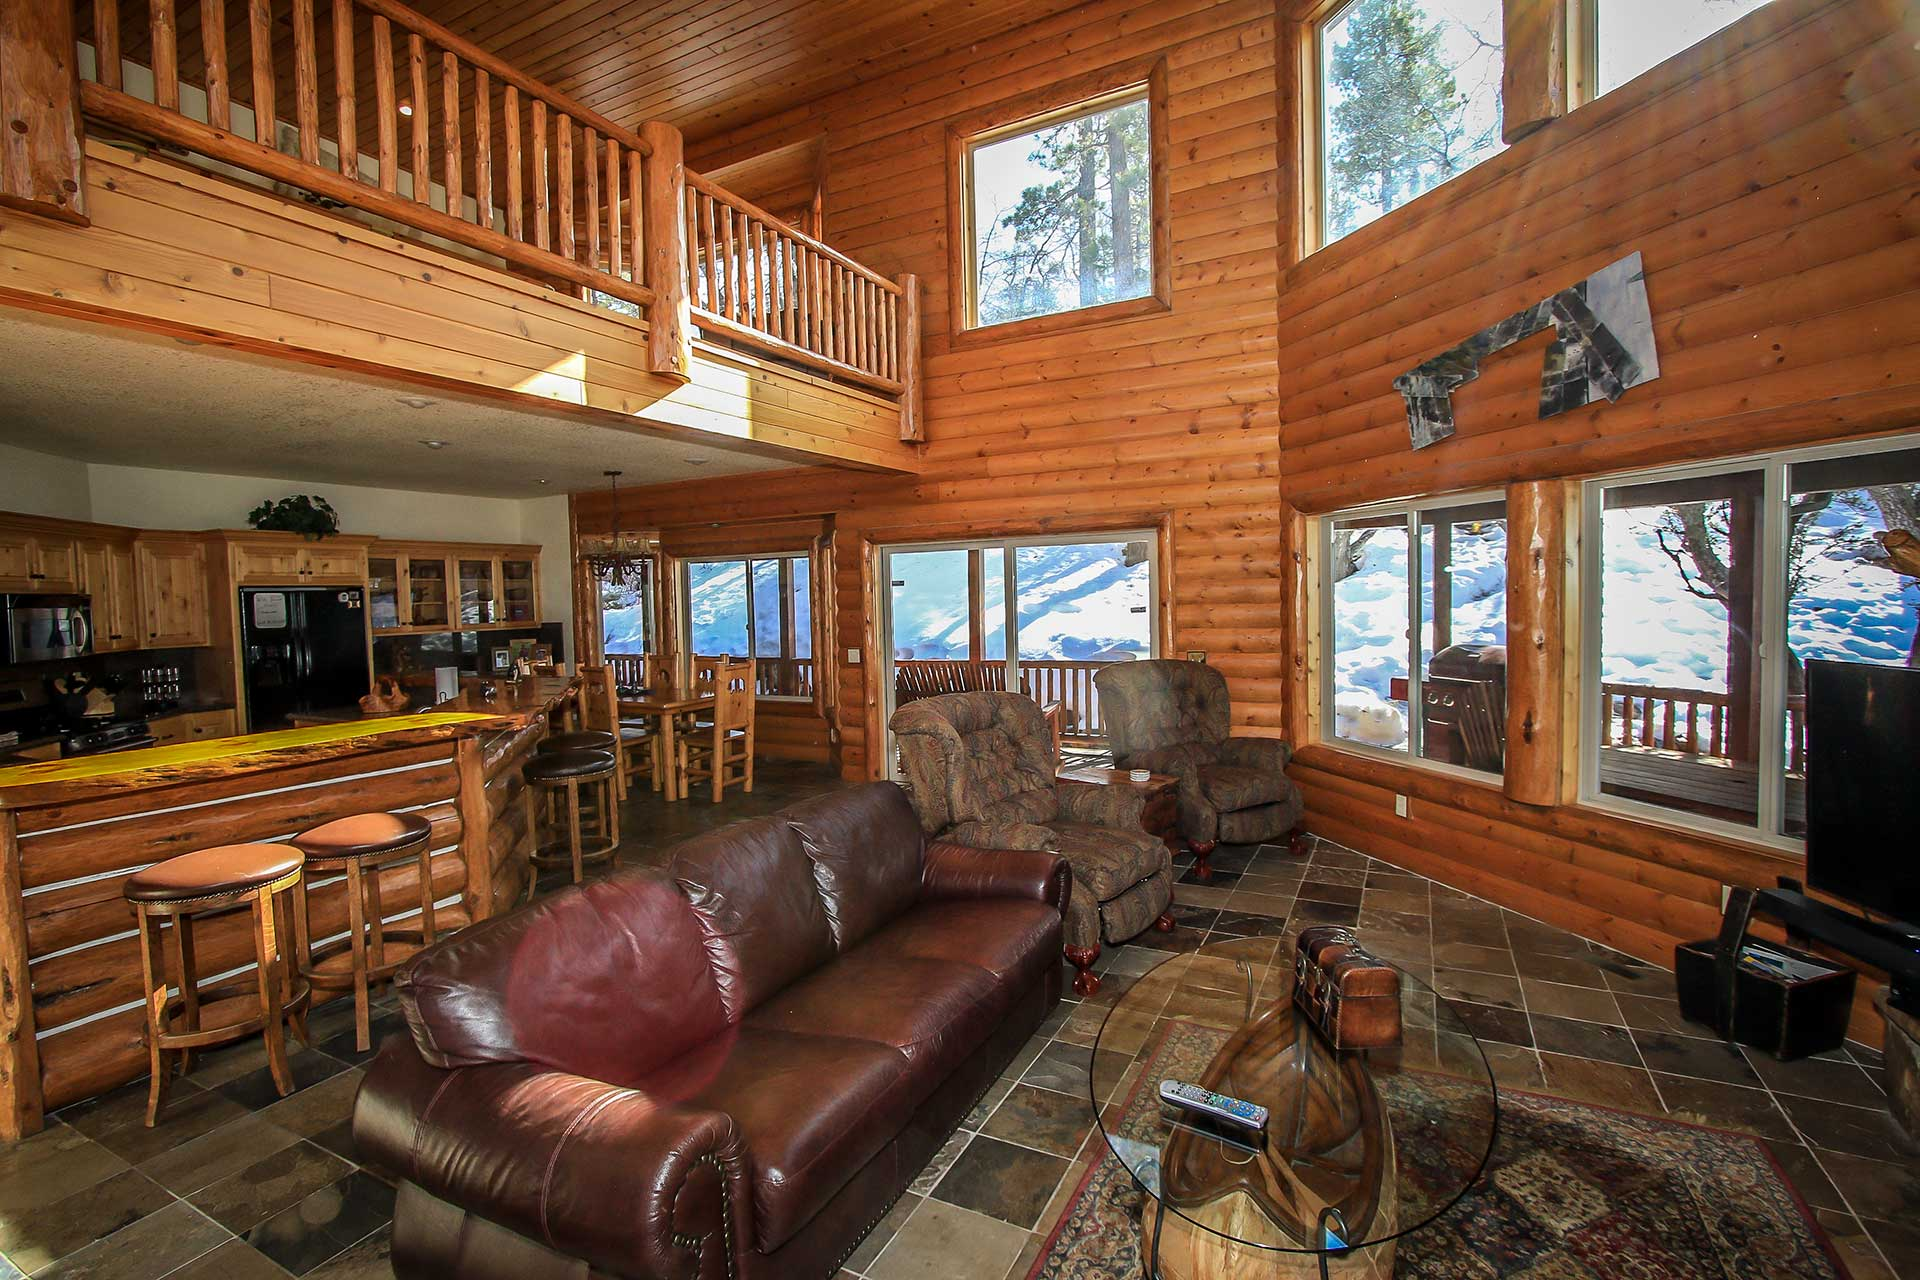 redawning rentals original home cabins bear vacation rental in big property cabin lake luxury log